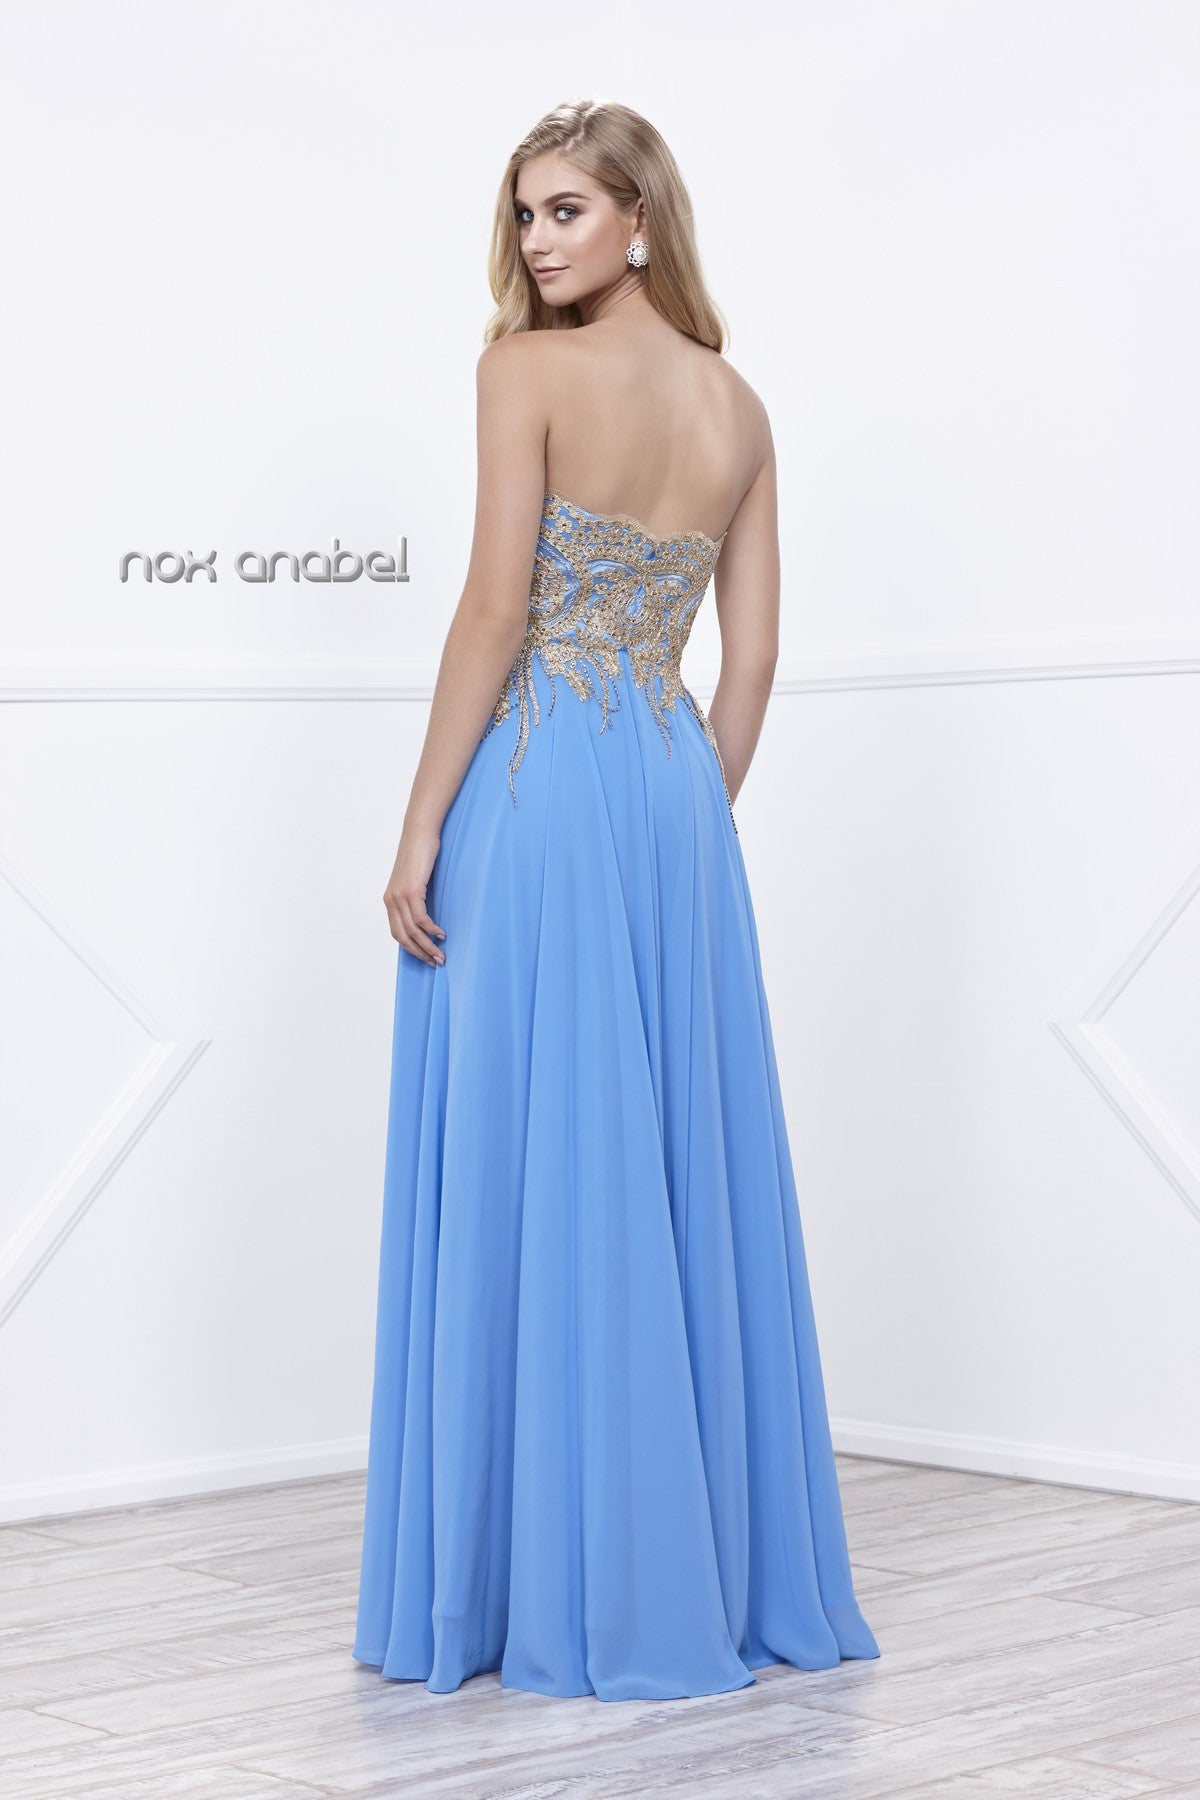 Sweetheart Neck Ocean Blue A-line Prom Gown Gold Appliqued Bodice